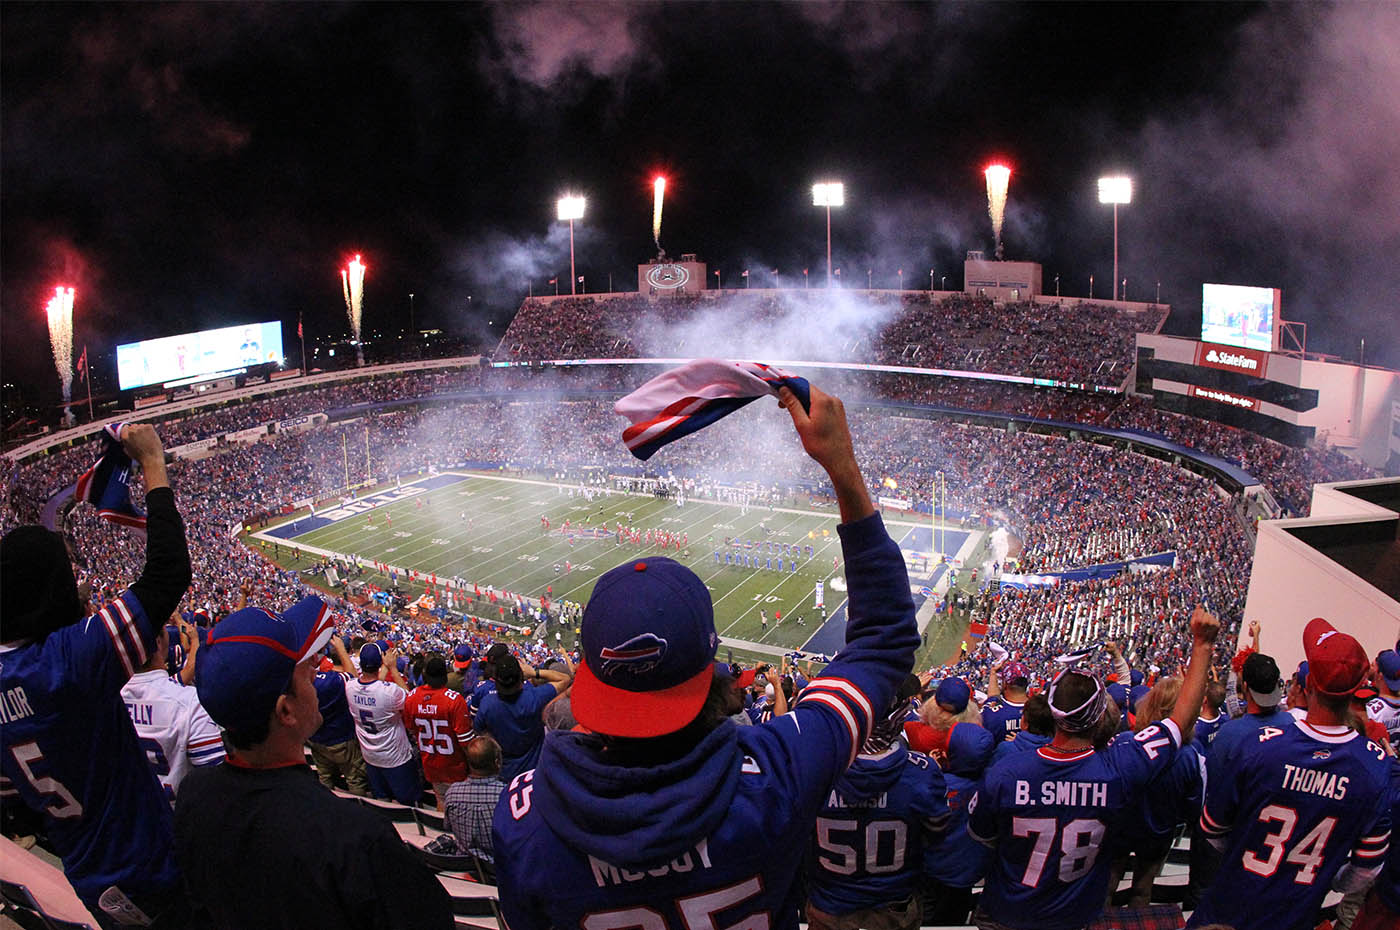 Pictures, Bill fans cheer as their team takes the field for the Jets game at New Era Field in Orchard Park, N.Y. on Thursday, Sept. 15, 2016. (James P. McCoy/ Buffalo News)